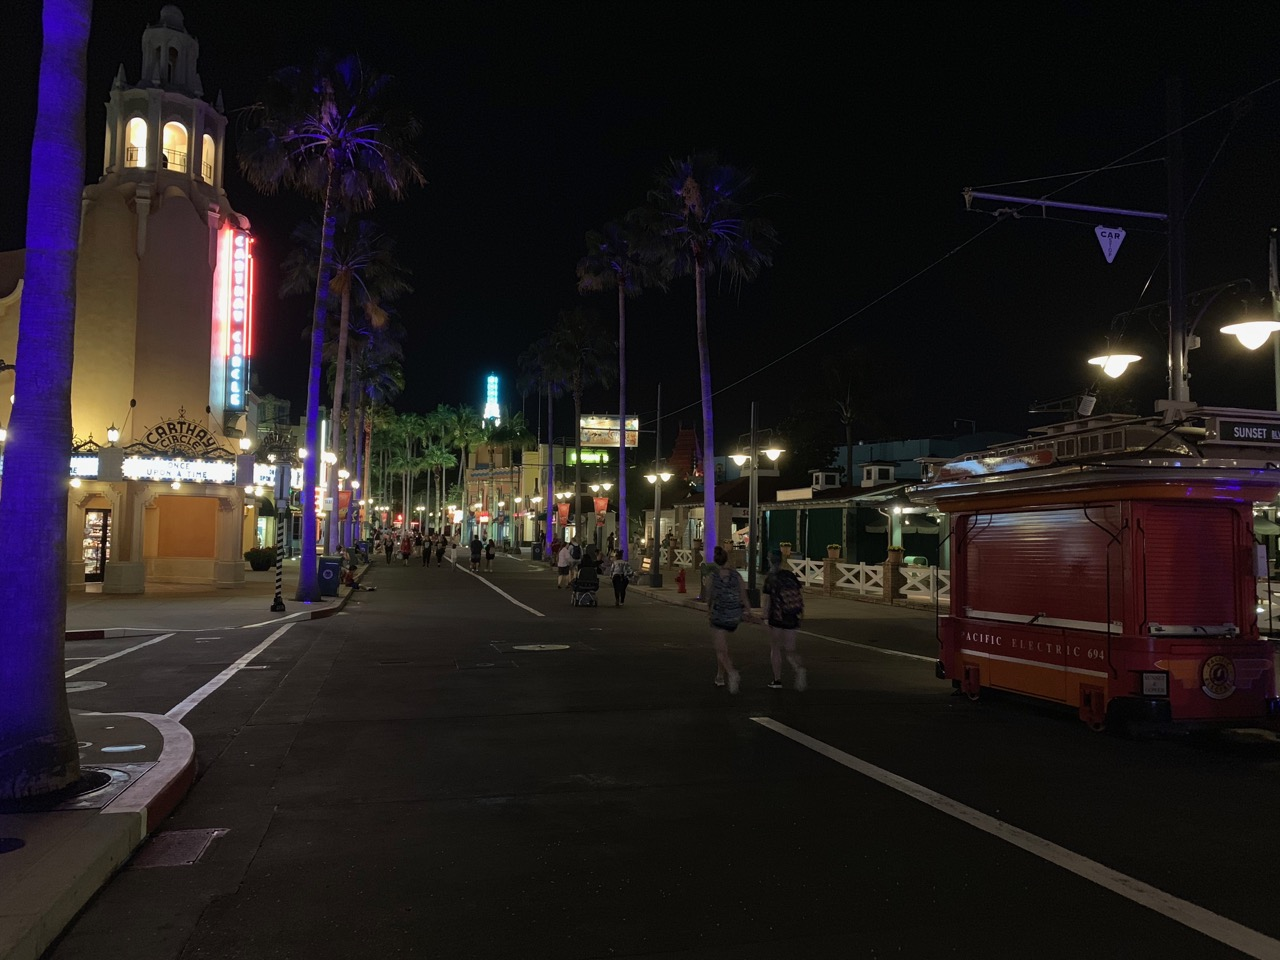 disney world hollywood studios after hours review 50 crowds.jpeg